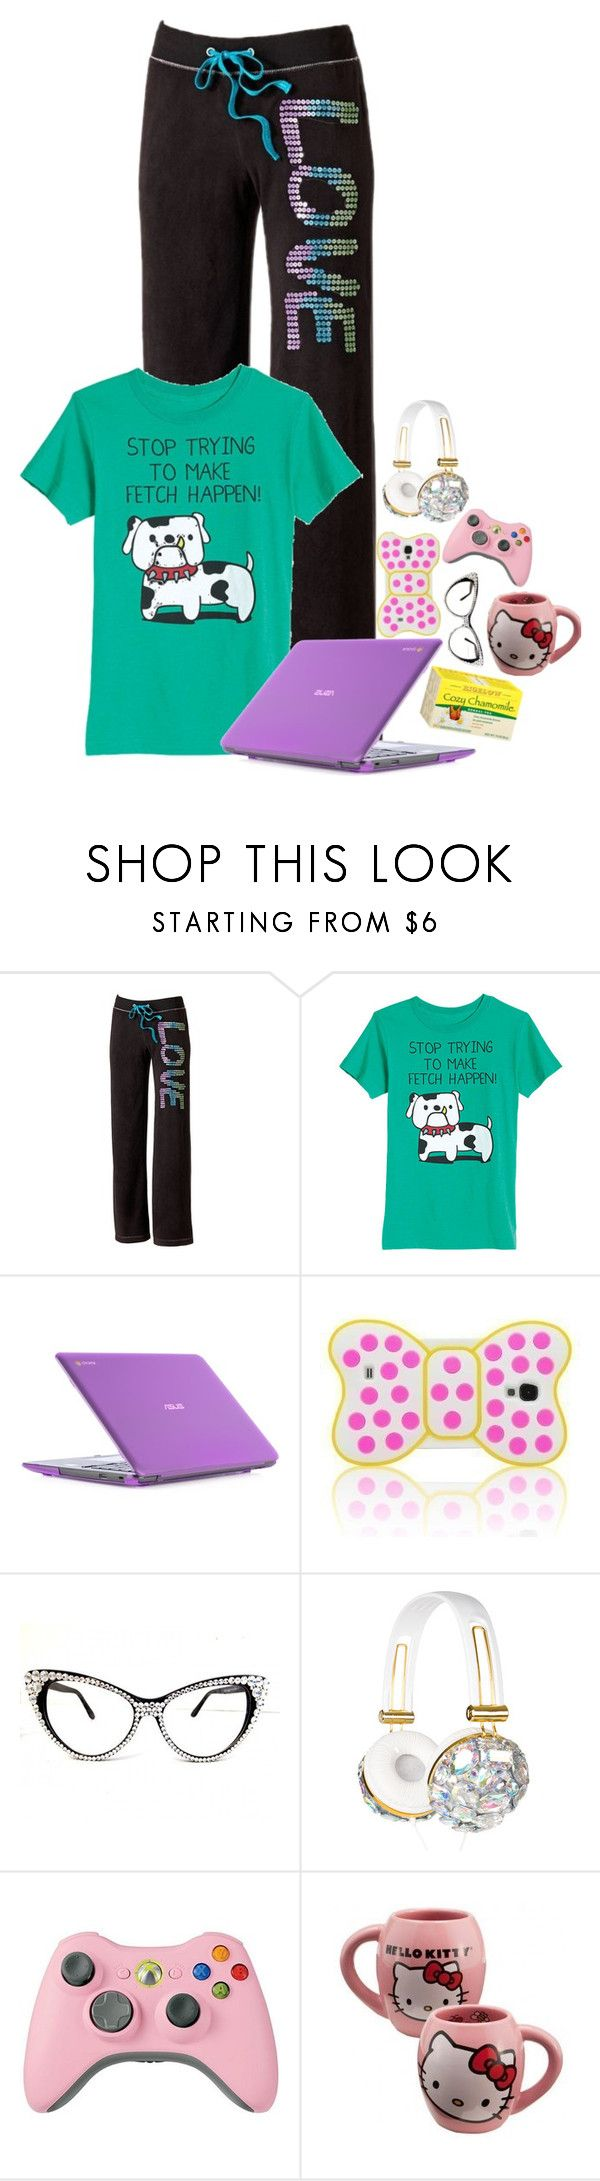 """Untitled #1155"" by emmzizleez888 ❤ liked on Polyvore featuring SO, ASUS, Samsung, Hello Kitty and vintage"